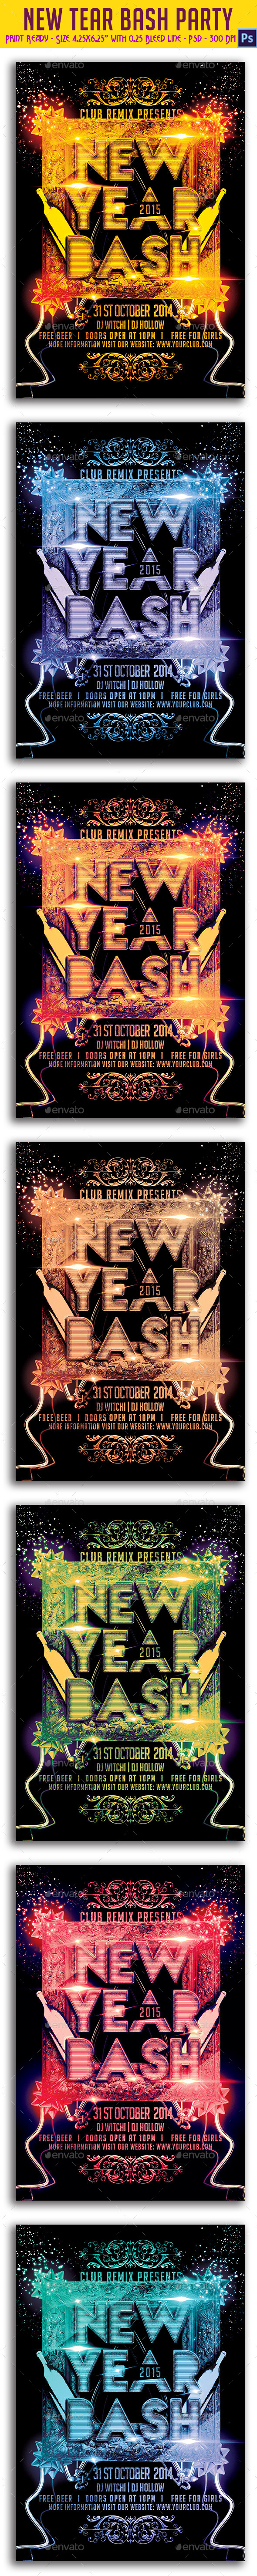 GraphicRiver New Year Bash Party Flyer 9603529